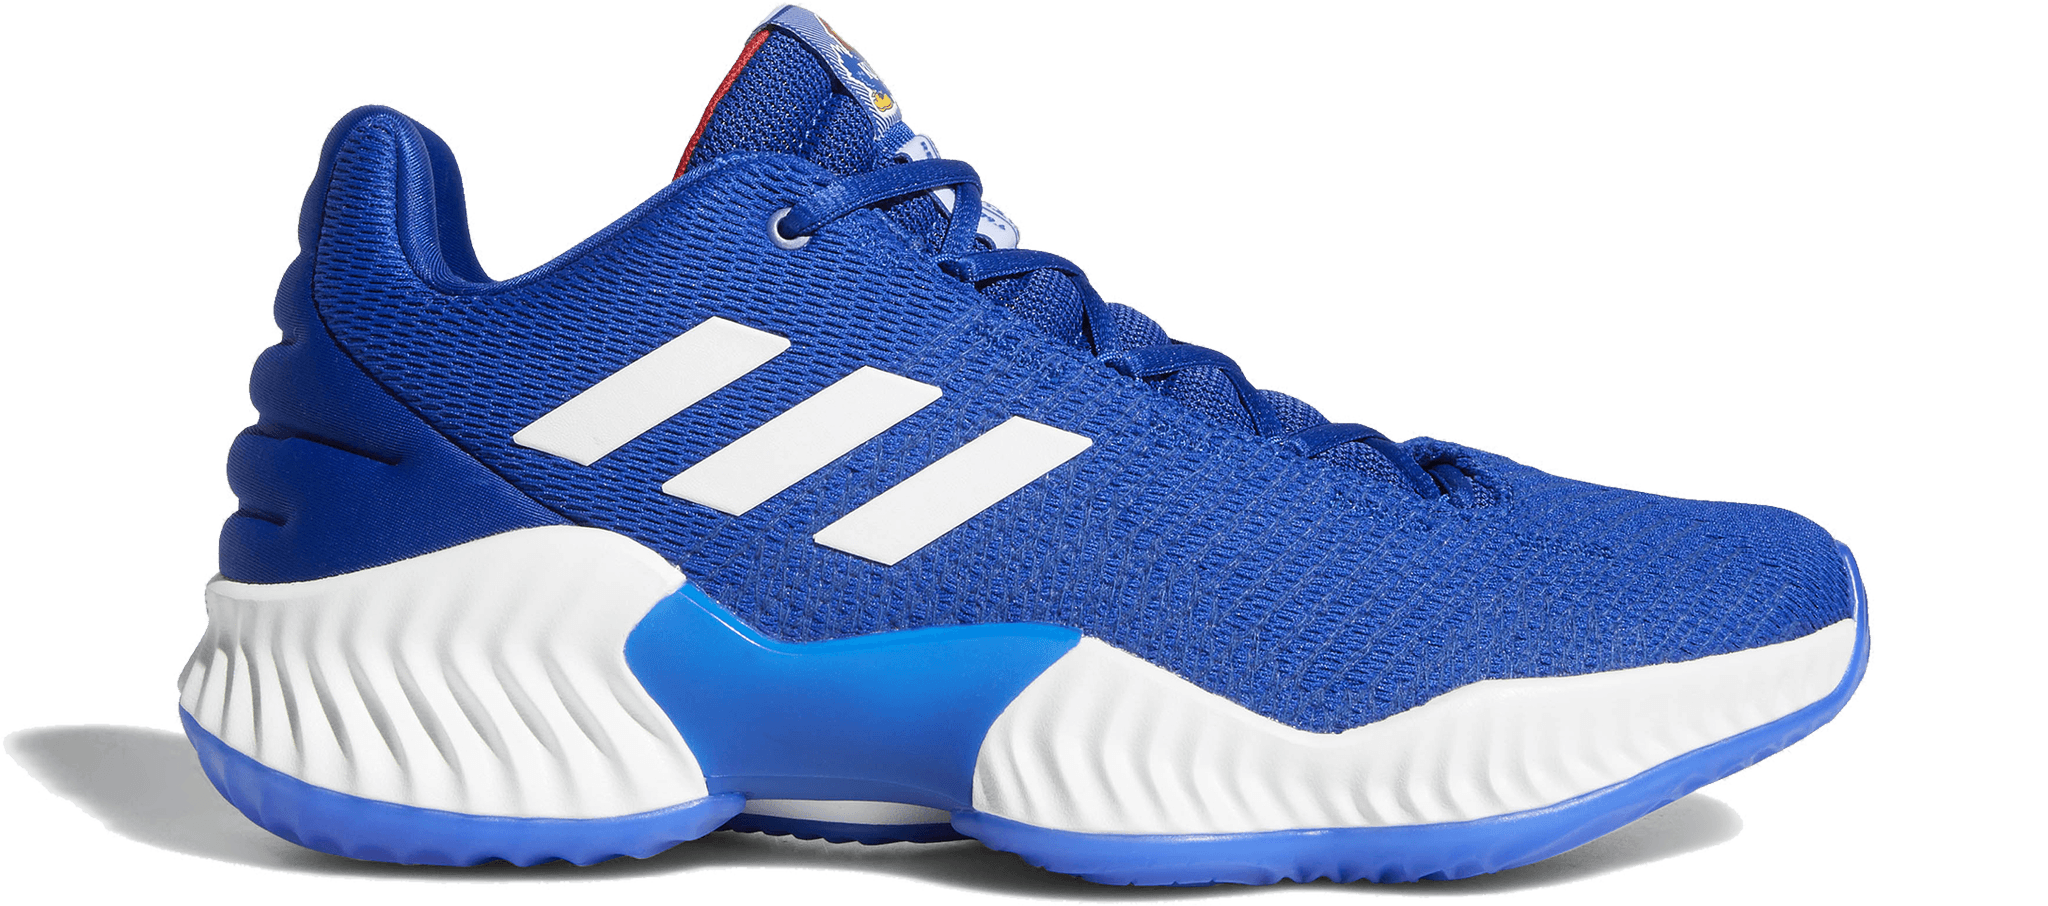 Adidas Pro Bounce Low Performance Review